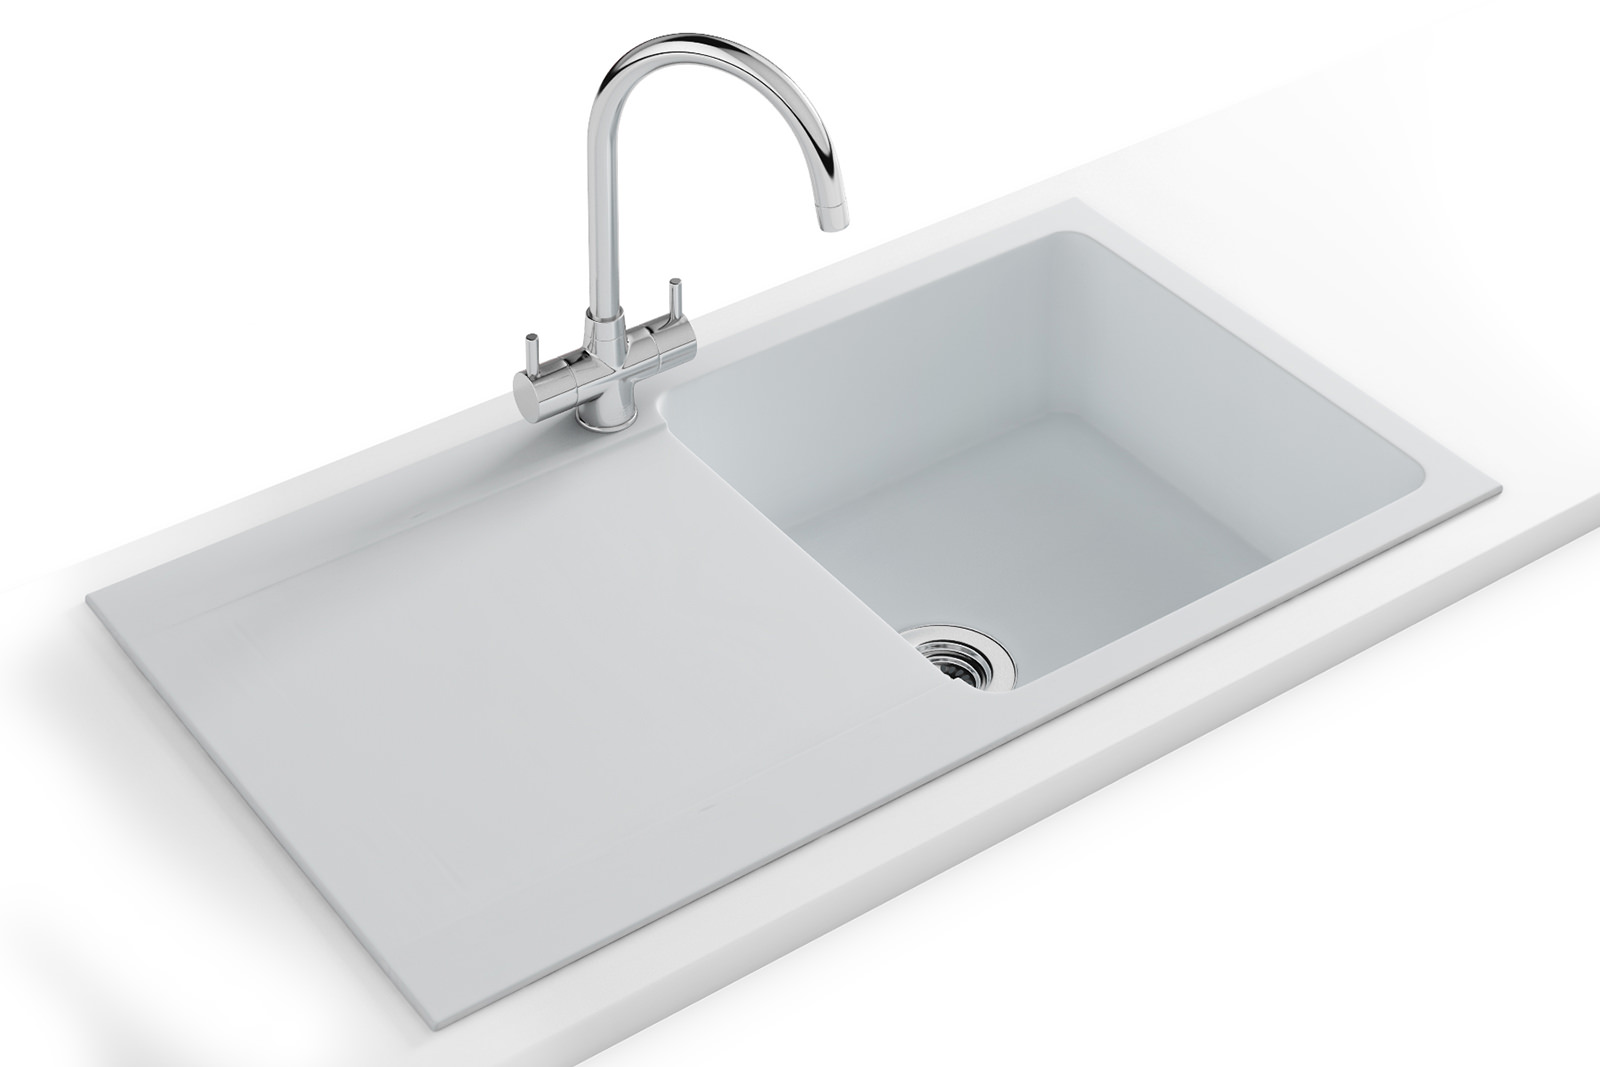 ... Orion Propack OID 611-94 Tectonite Polar White Kitchen Sink And Tap